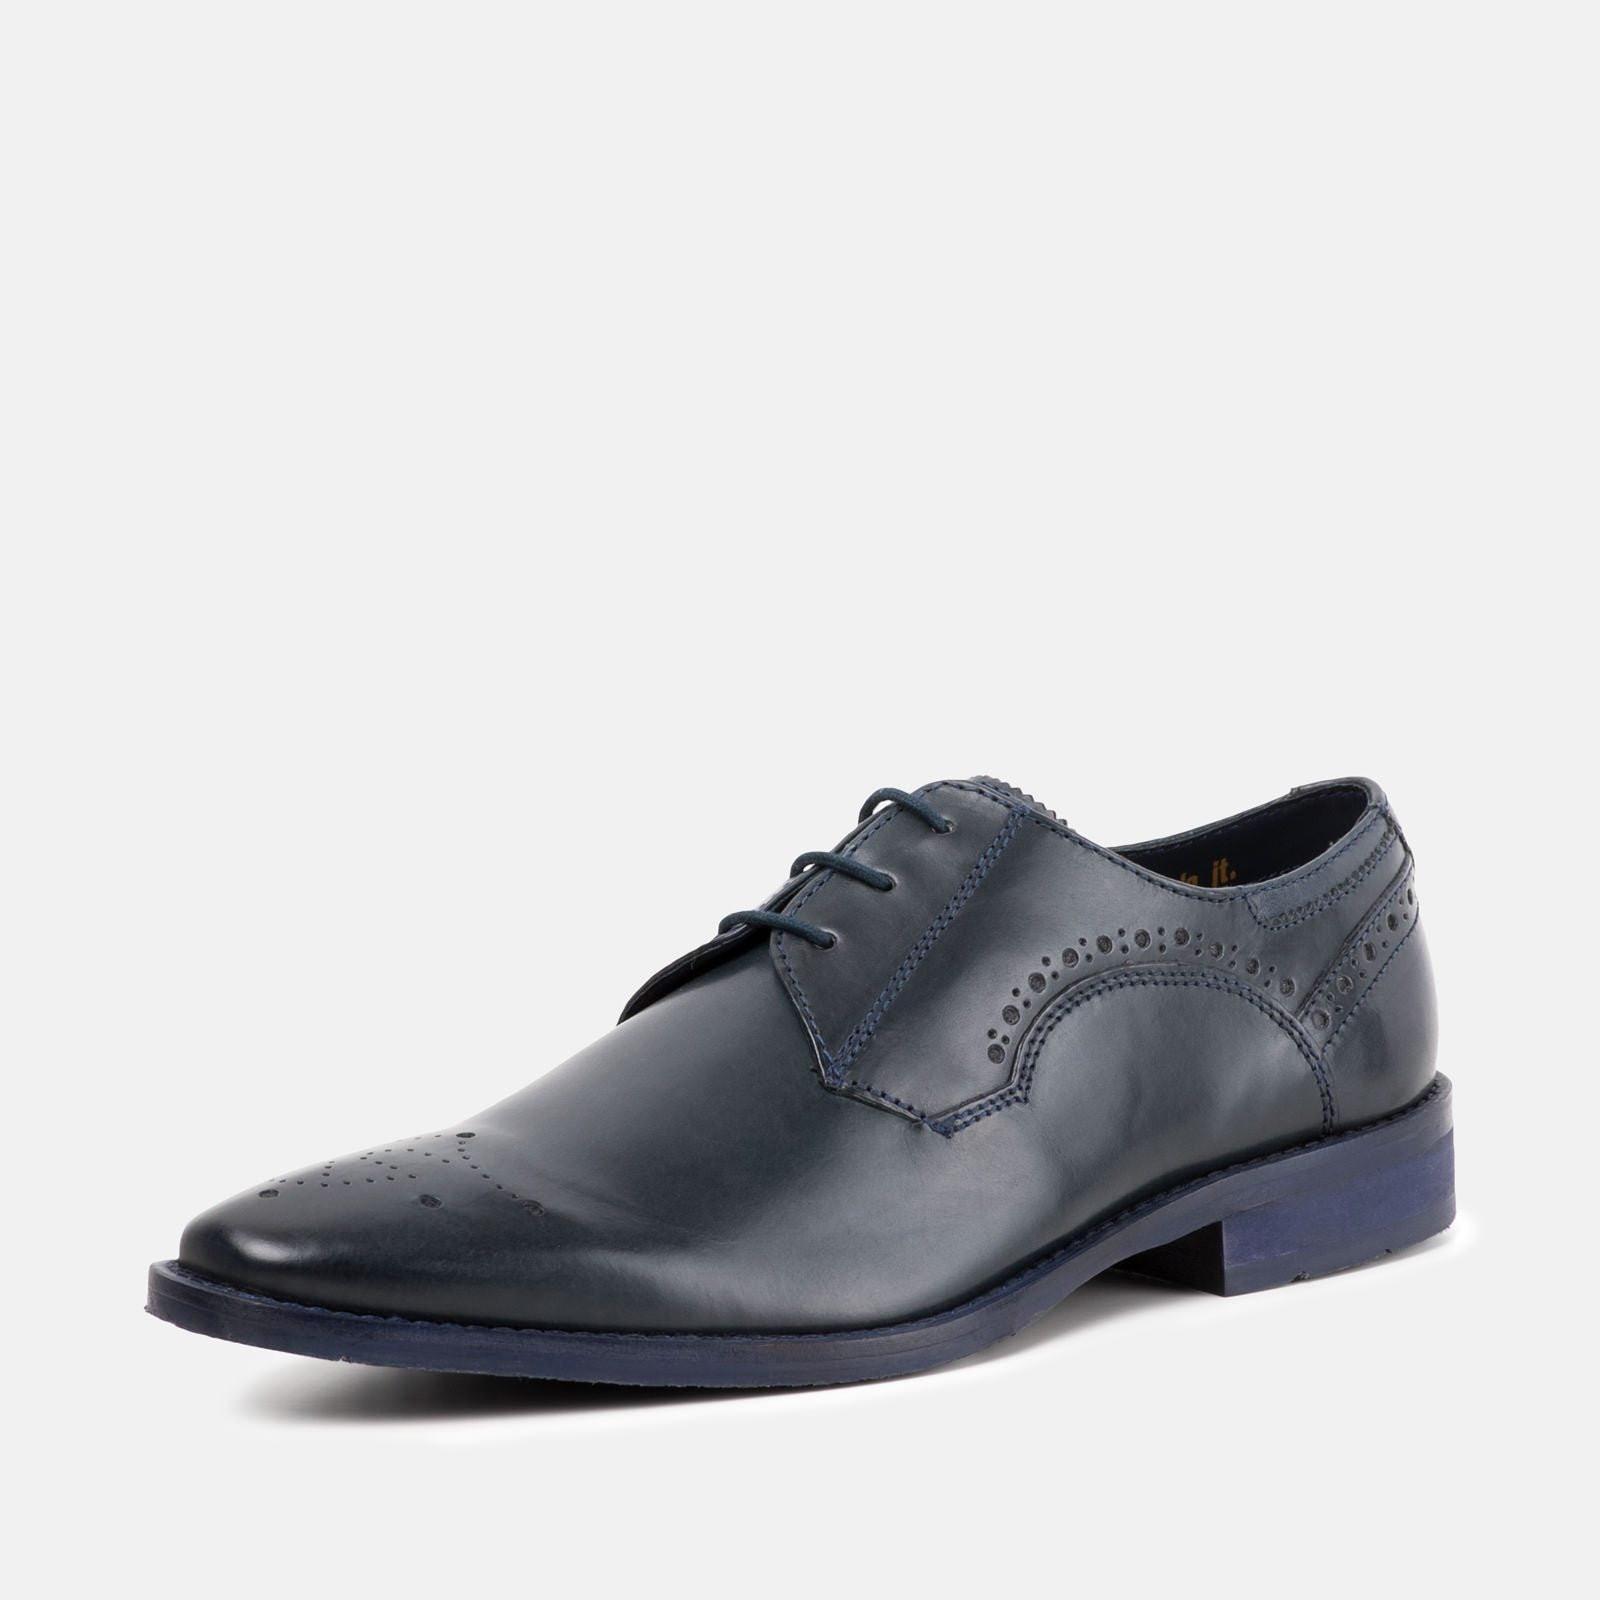 Goodwin Smith Footwear UK 6 / EURO 39 / US 7 / Blue / Leather HOLDEN NAVY